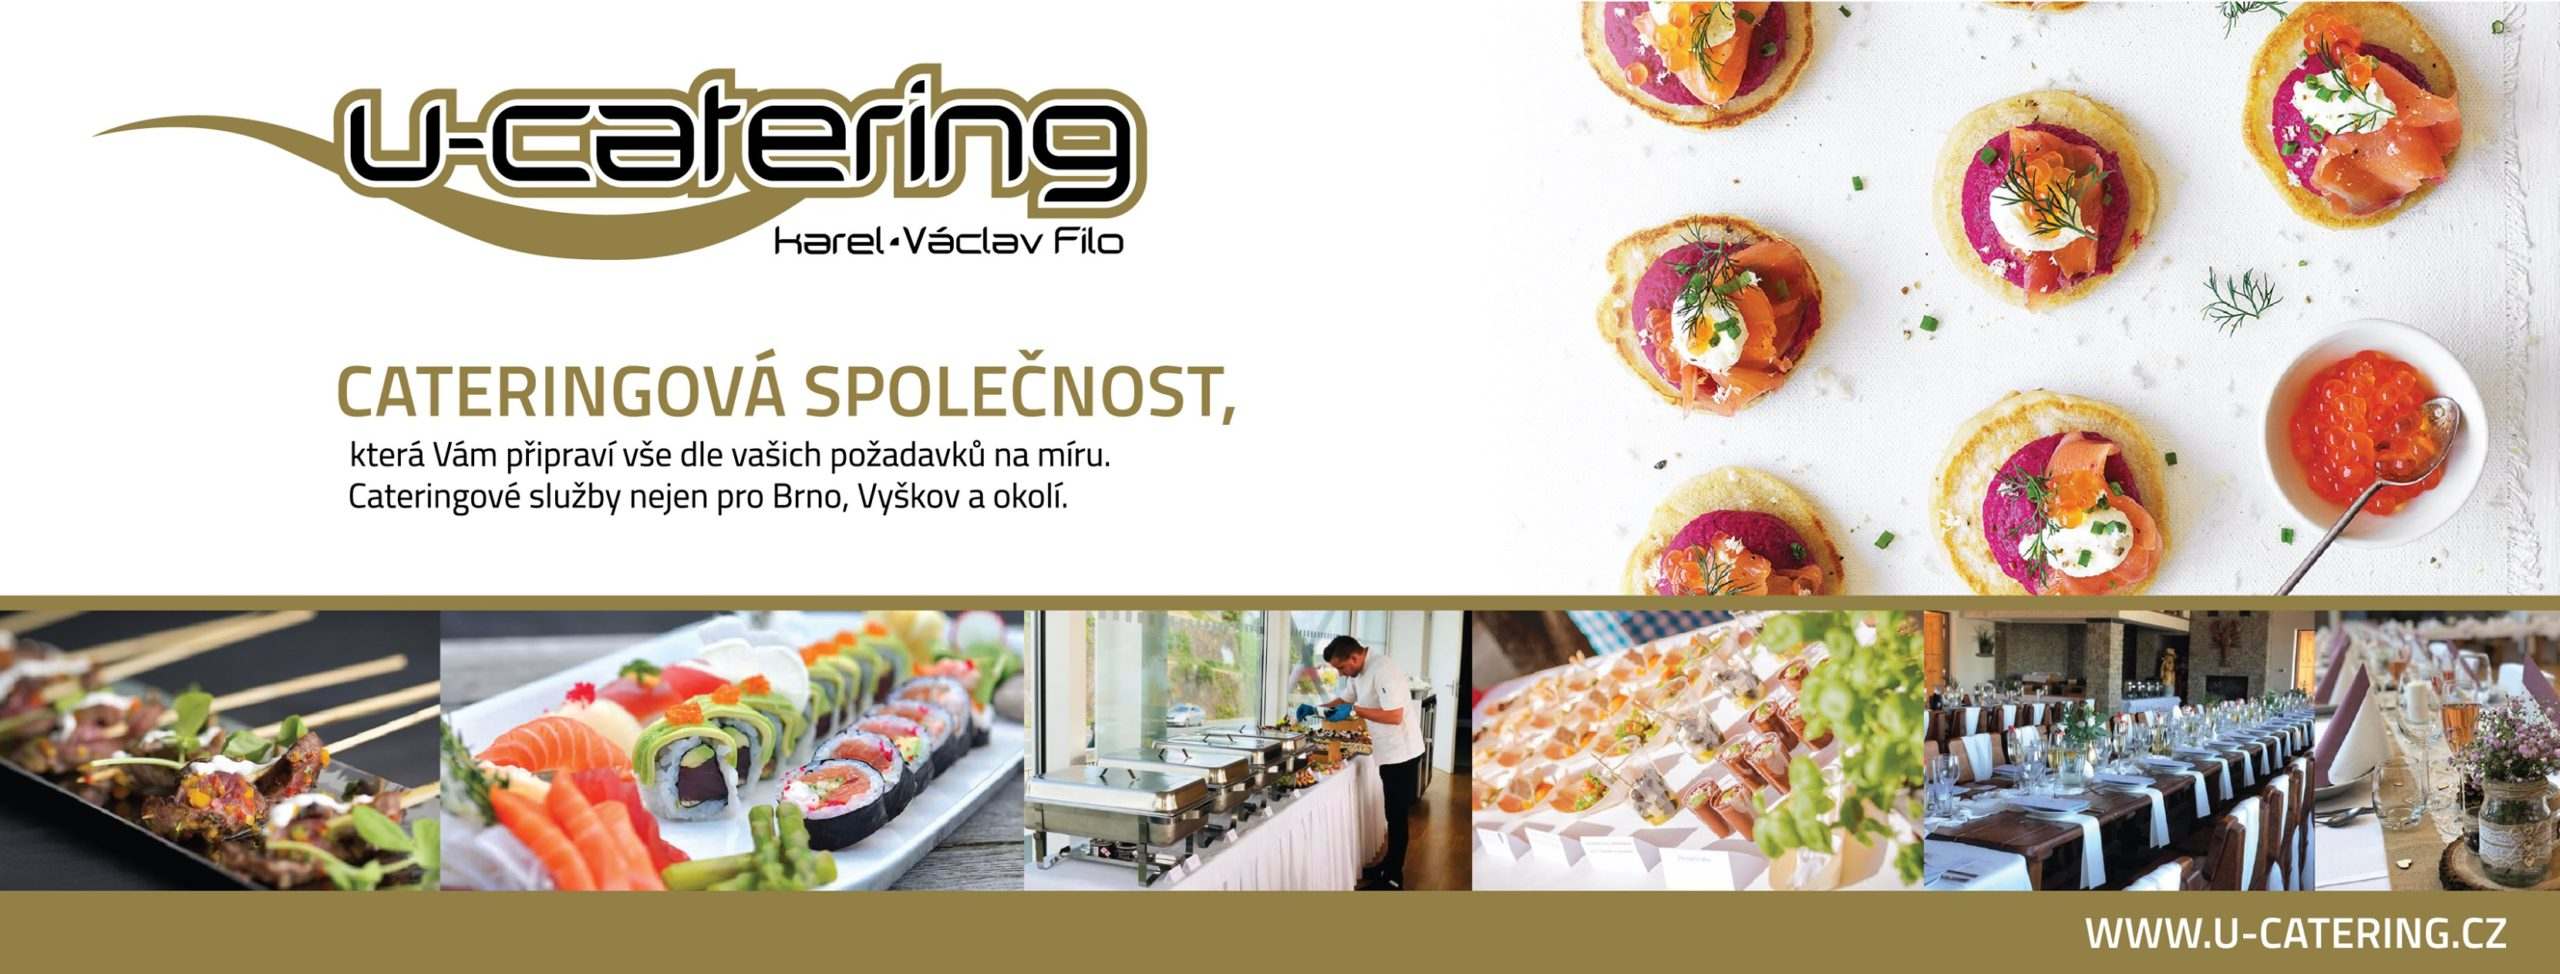 https://www.facebook.com/ucateringrousinov/